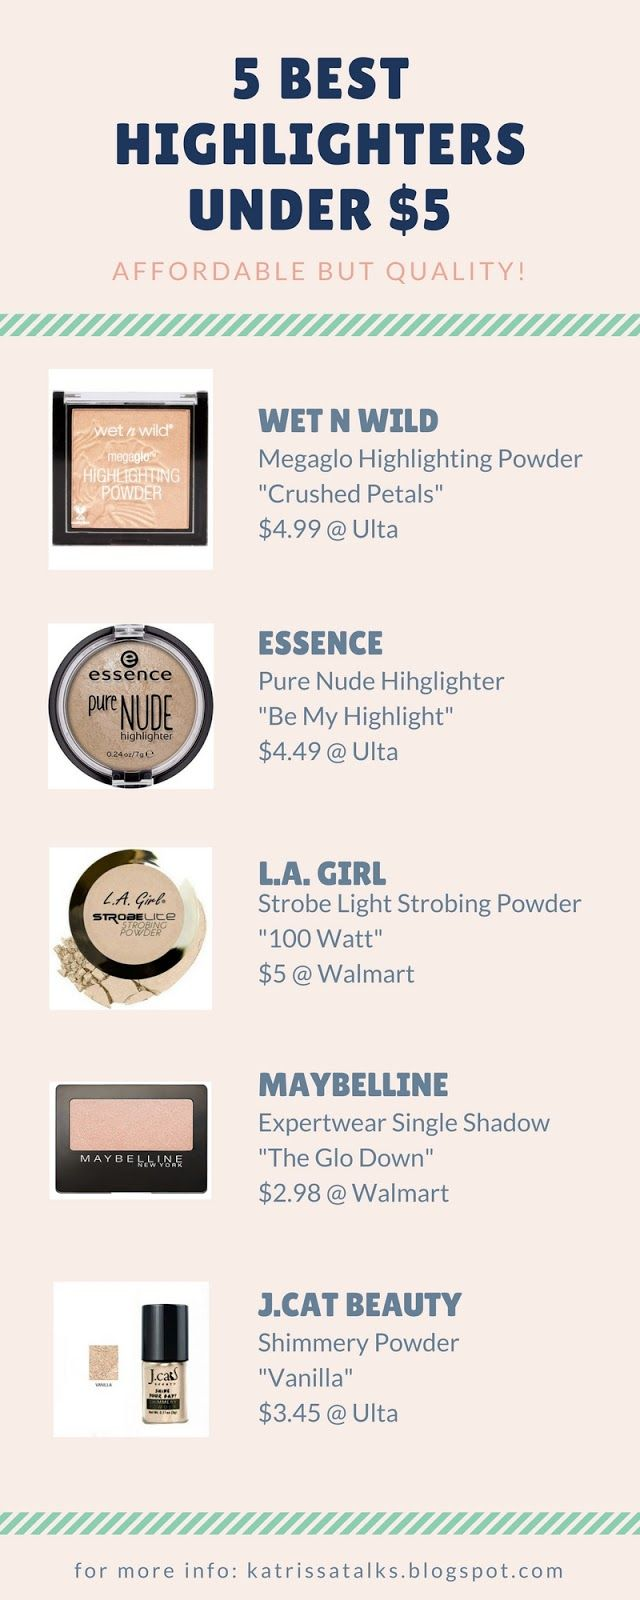 5 BEST HIGHLIGHTERS UNDER $5